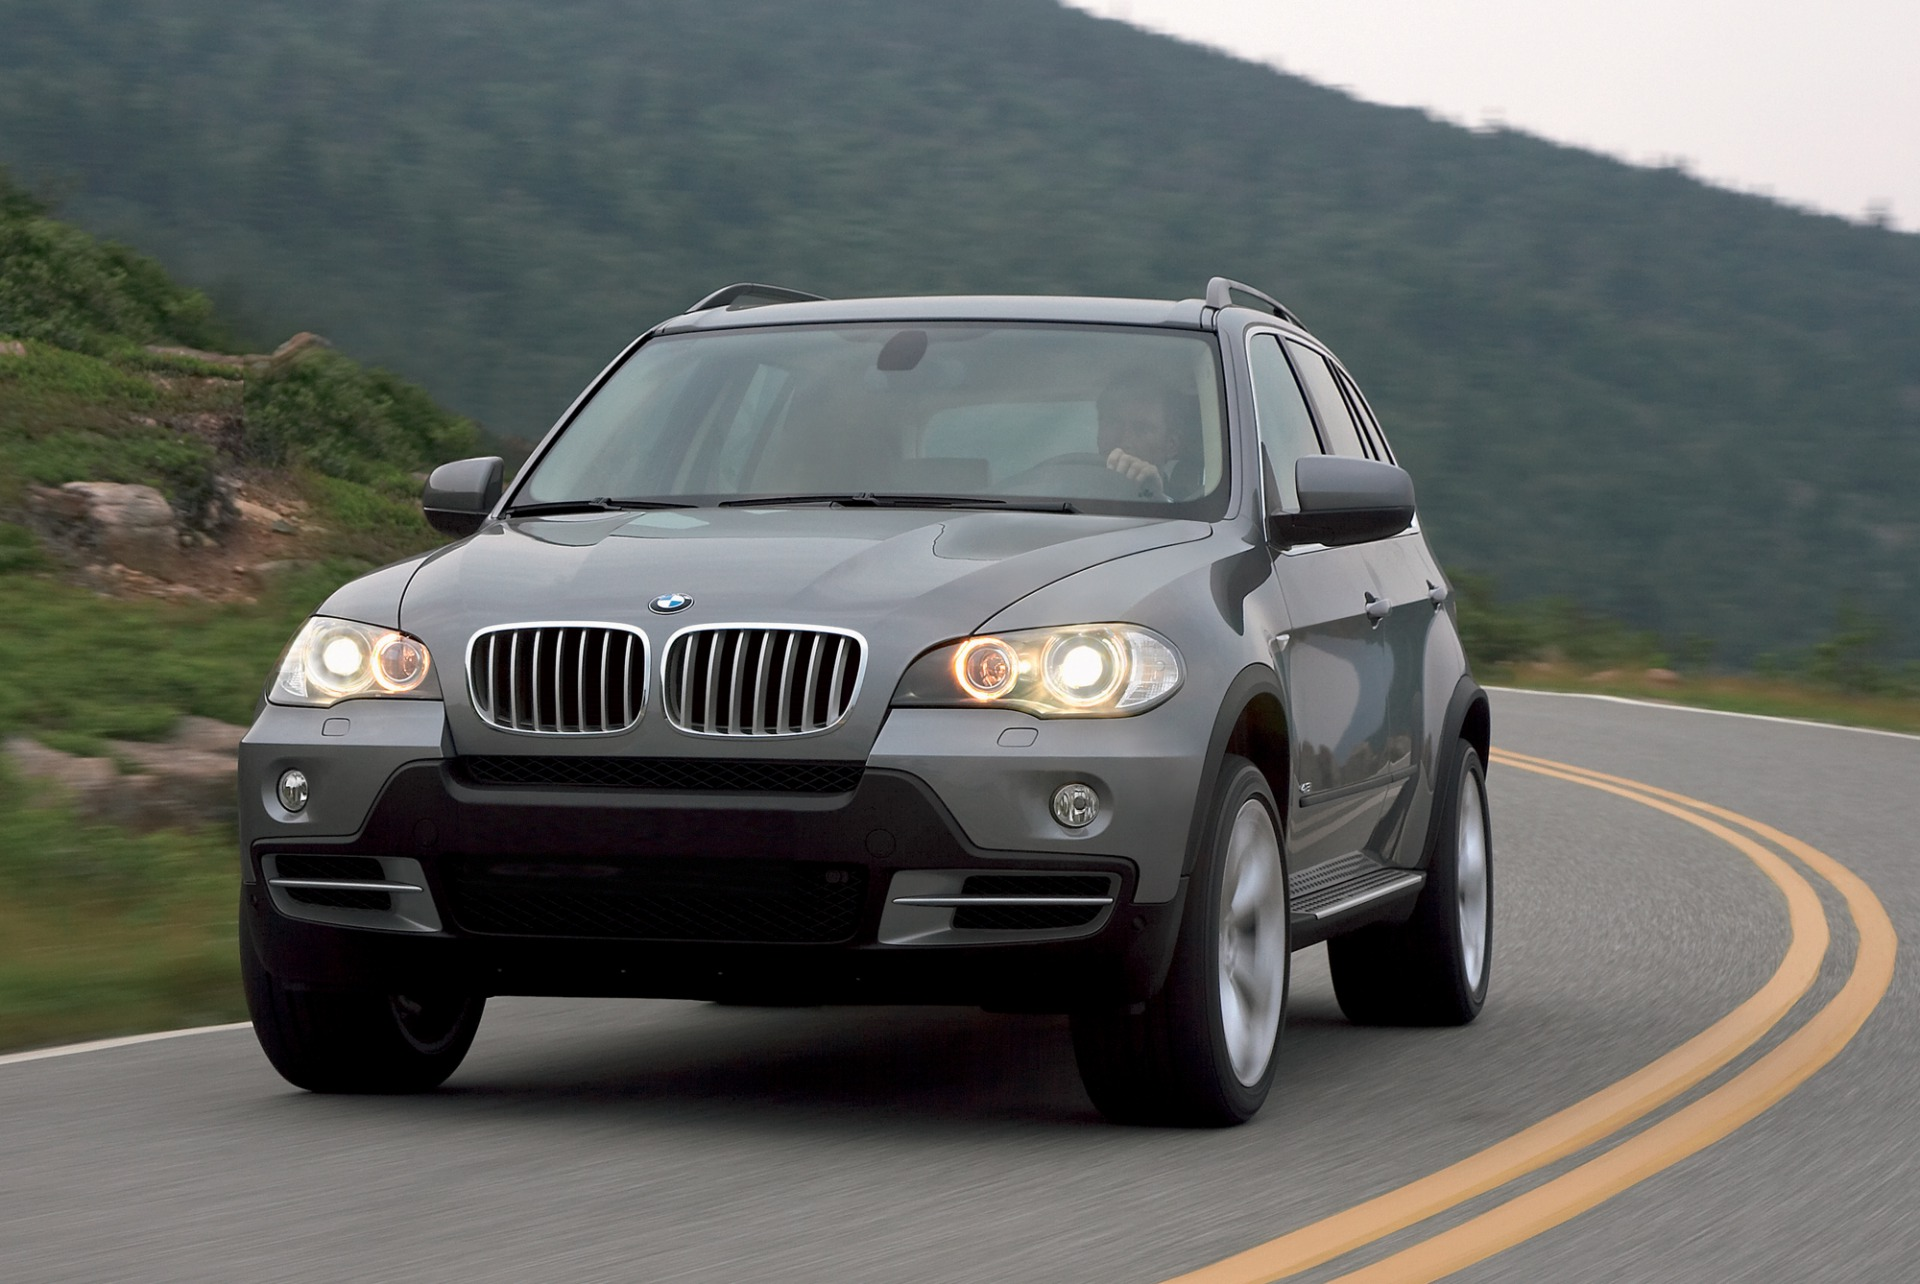 2008 bmw x5 technical specifications and data engine dimensions and mechanical details. Black Bedroom Furniture Sets. Home Design Ideas